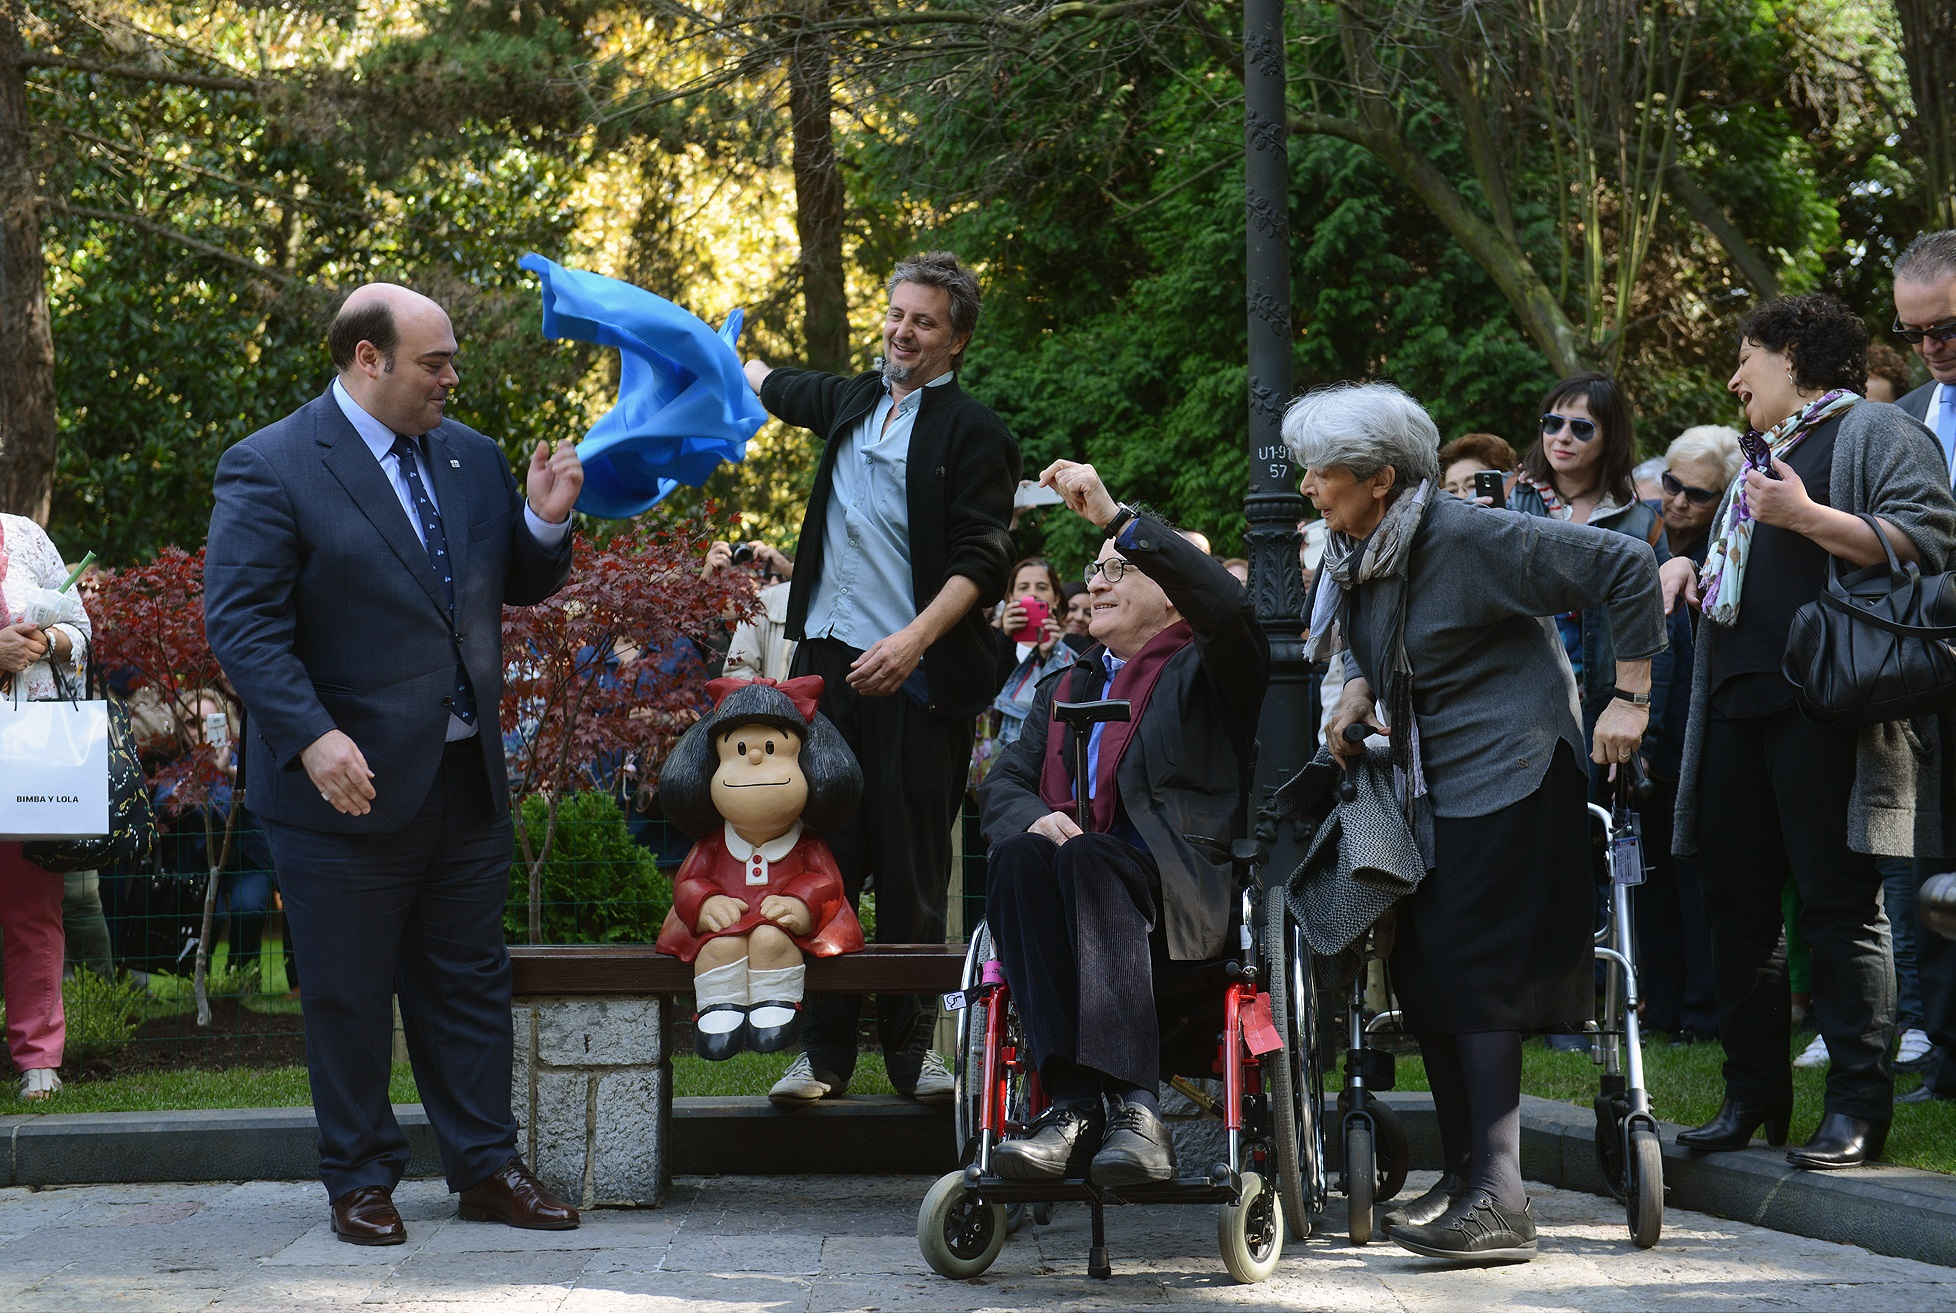 Inauguration of Mafalda's sculpture in Oviedo